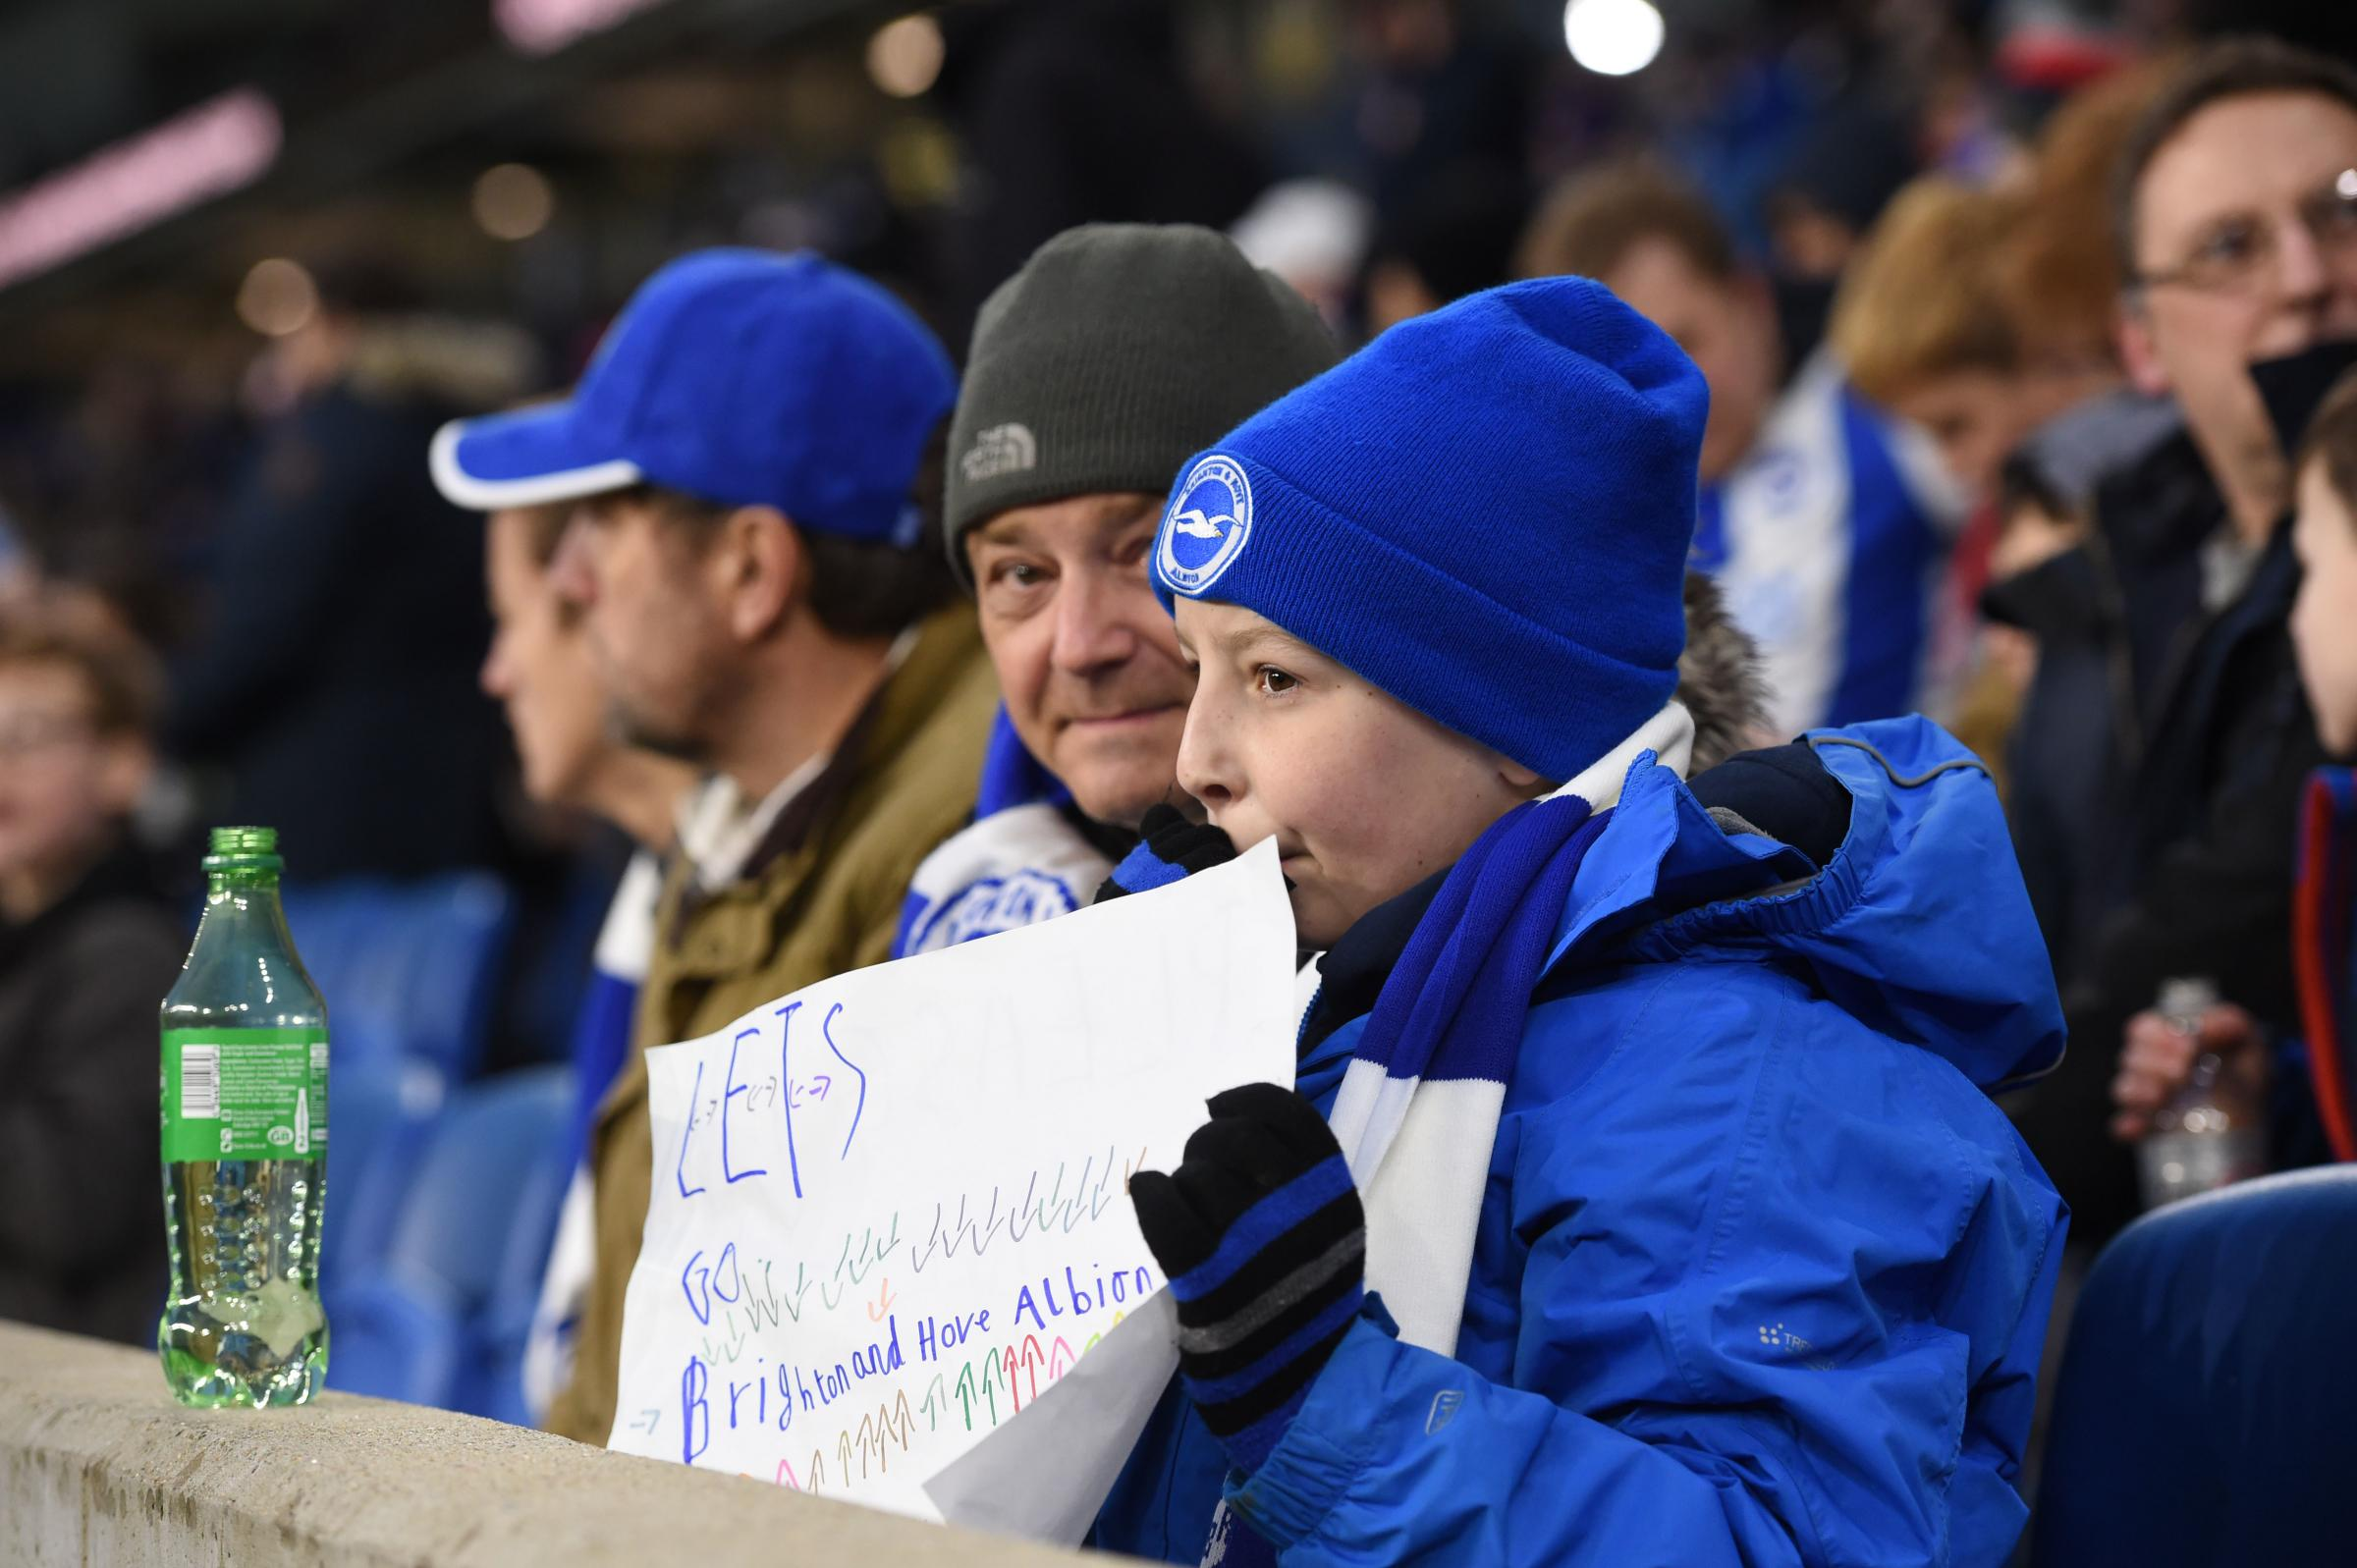 Fans during the Premier League match between Brighton & Hove Albion and Burnley at the American Express Community Stadium . 09 February 2019.Photograph taken by Simon Dack..Editorial use only. No merchandising. For Football images FA and Premier Leagu